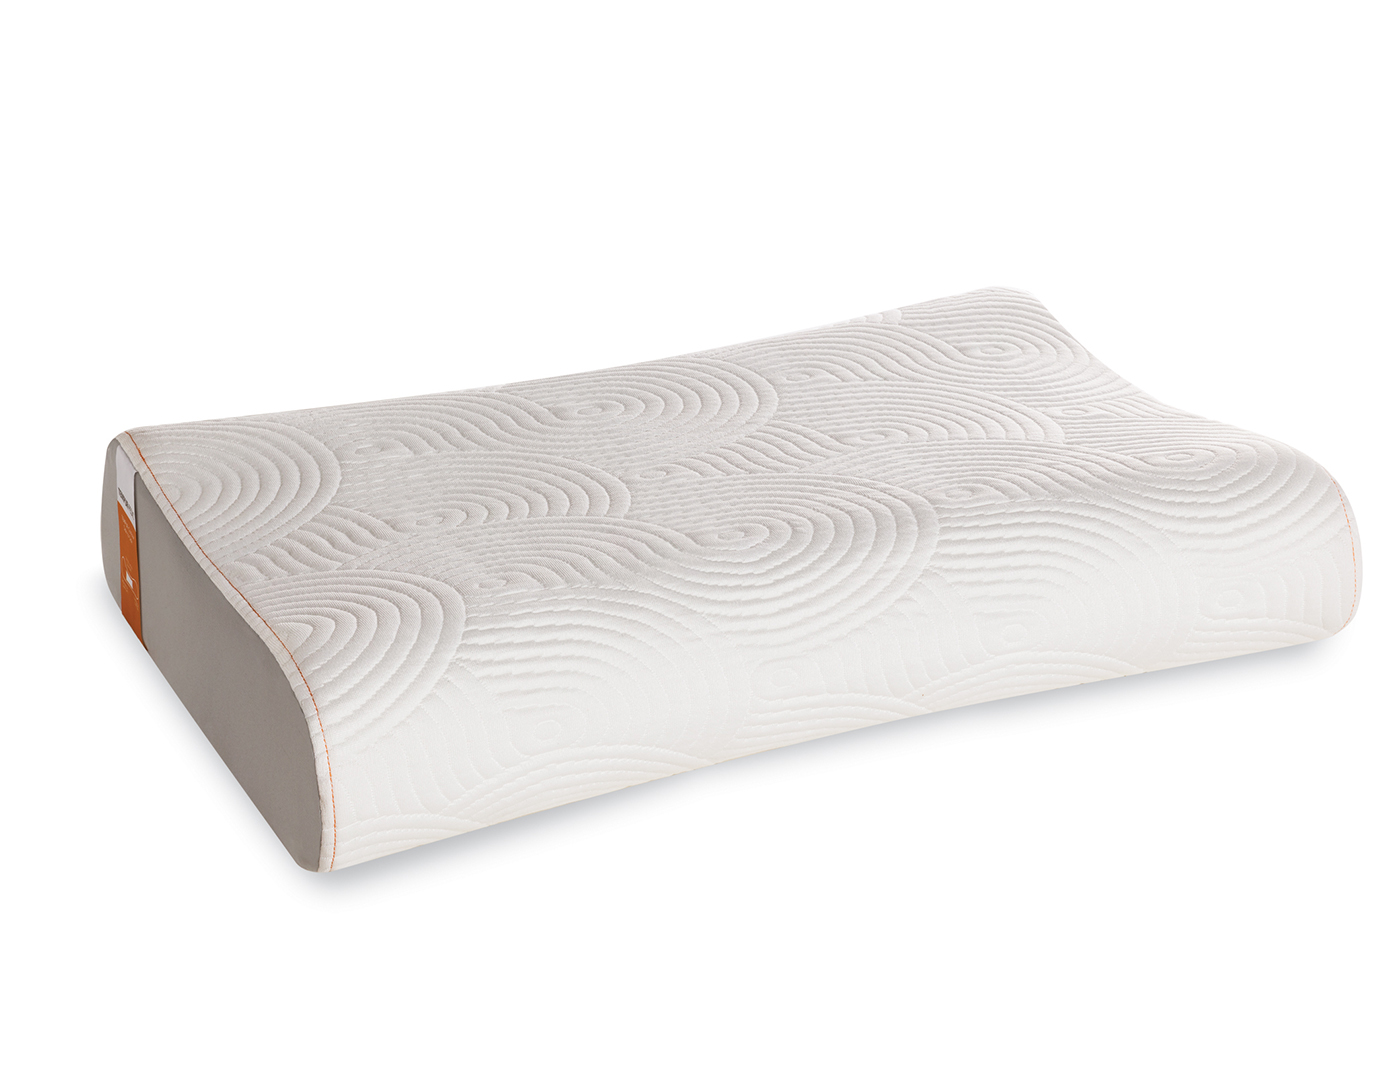 TEMPUR-Contour Queen Side to Side Pillow